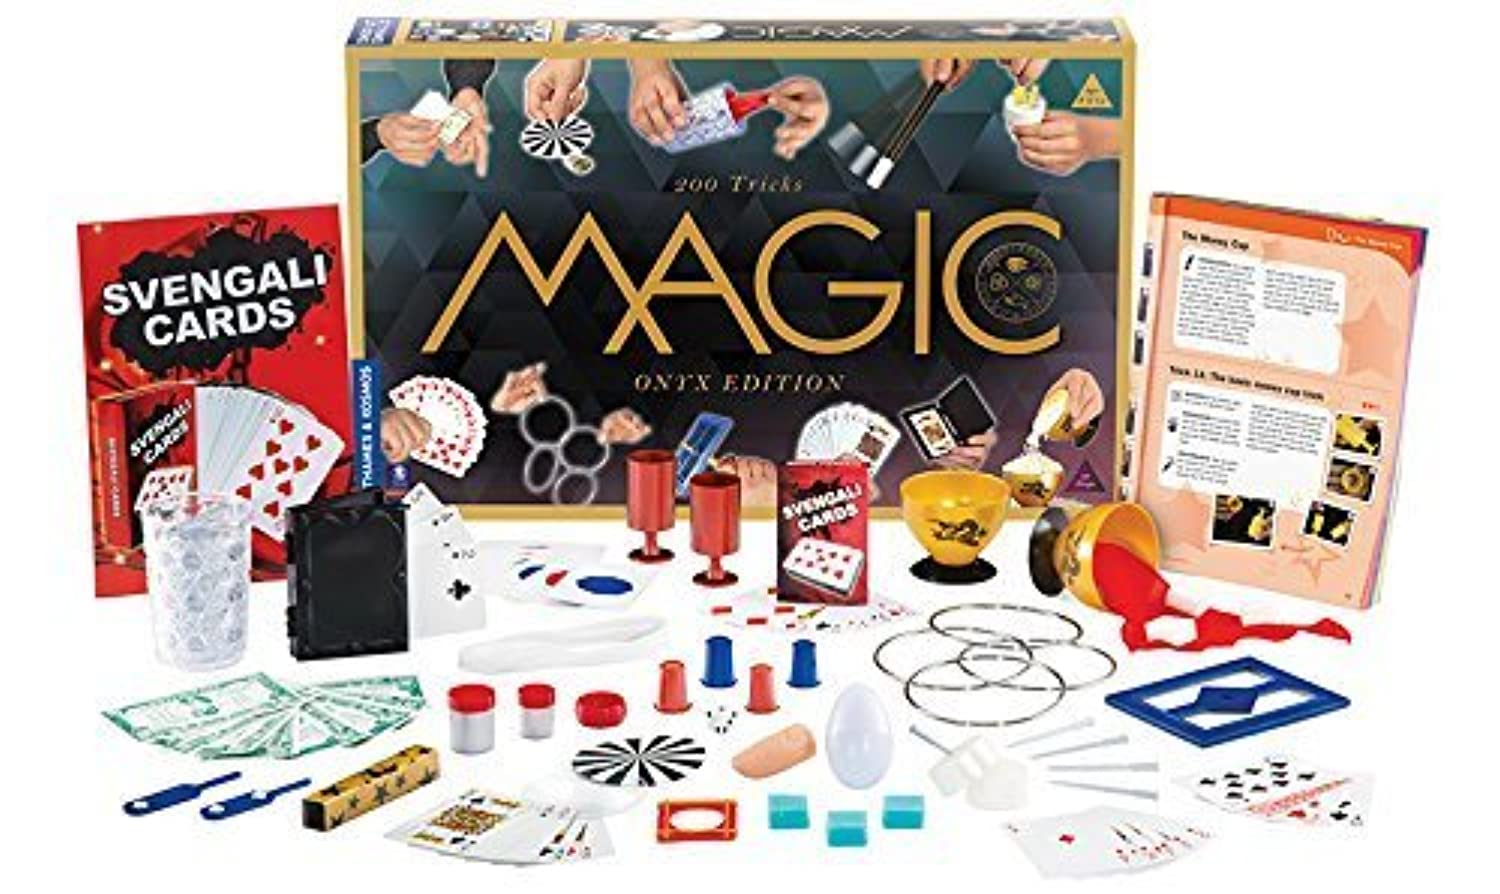 Thames & Kosmos Magic: Onyx Edition Playset with 200 Tricks by Thames & Kosmos [並行輸入品]